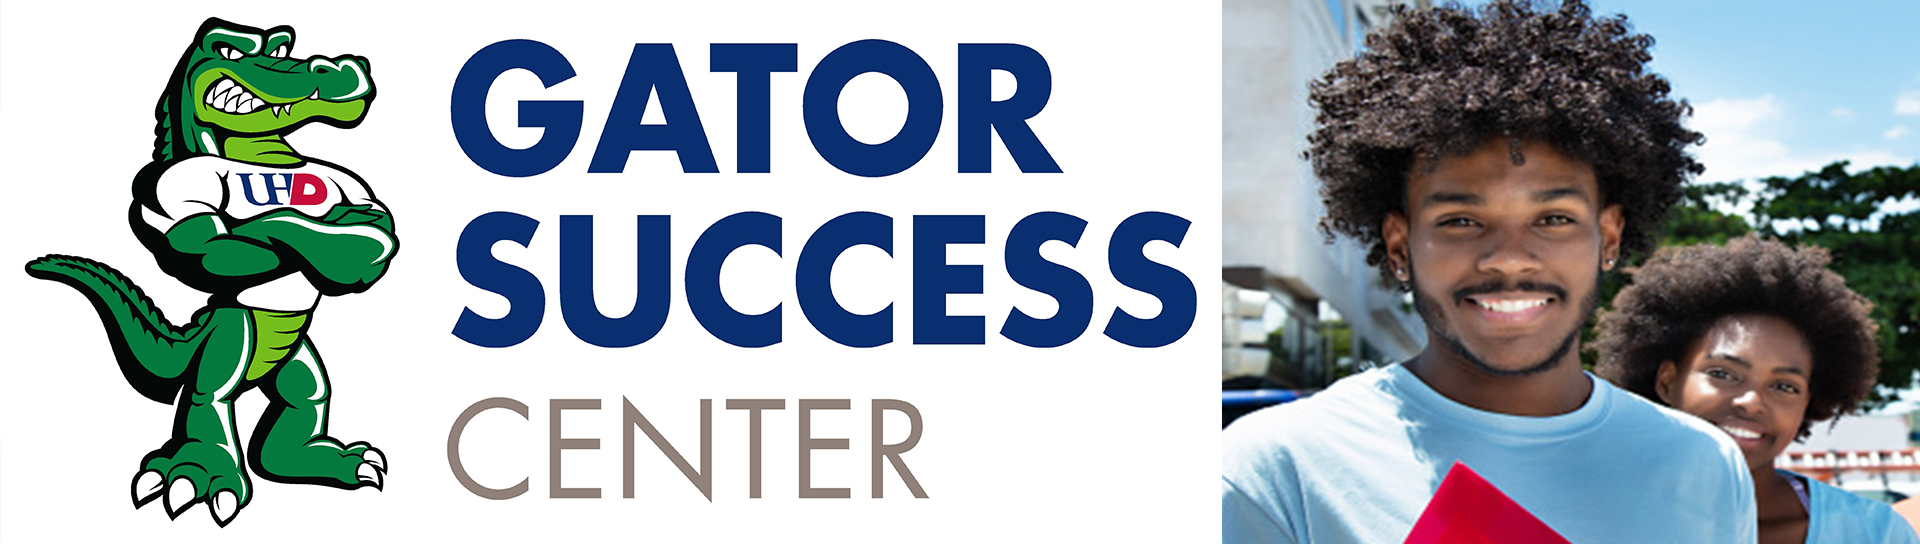 Gator Success Center Banner